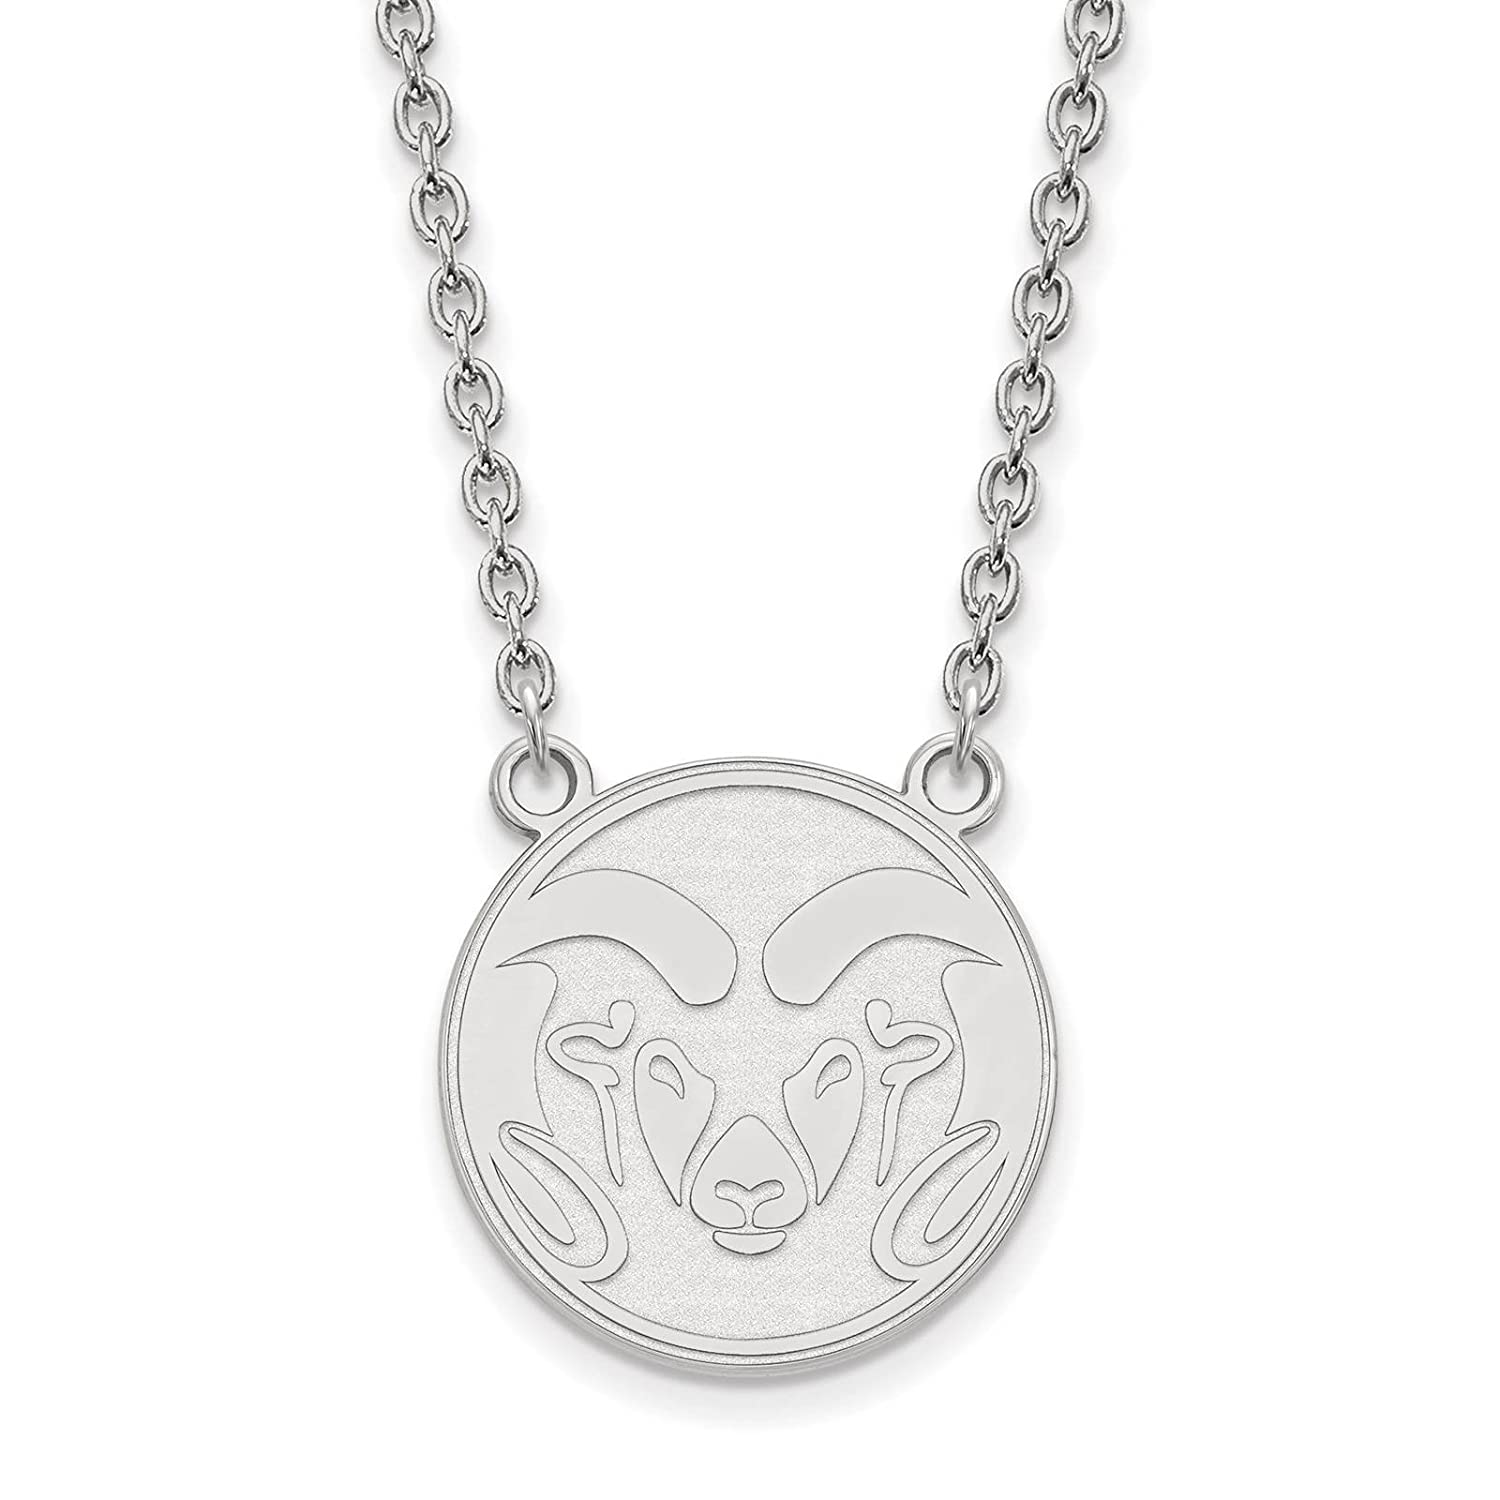 925 Sterling Silver Rhodium-plated Laser-cut Colorado State University Large Pendant w//Necklace 18